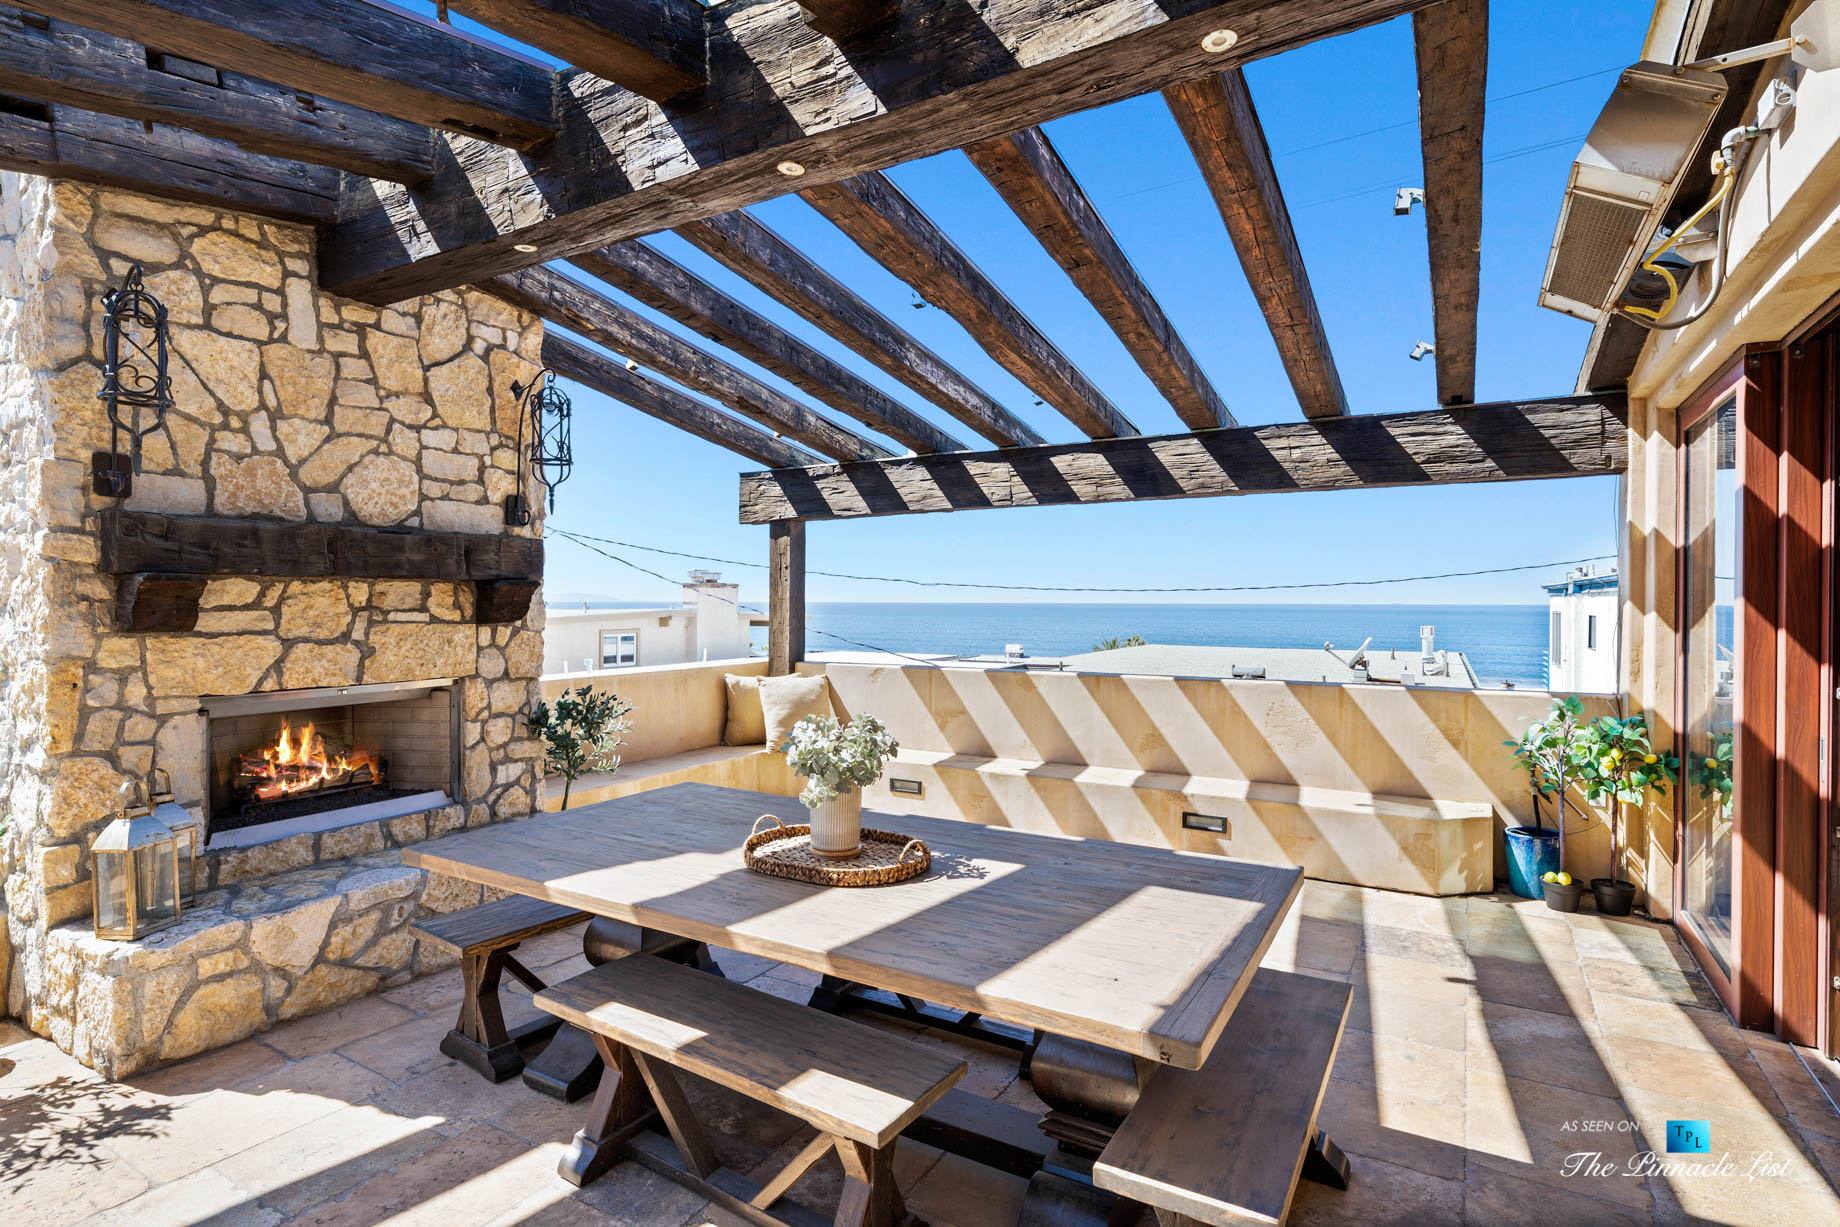 a216 7th St, Manhattan Beach, CA, USA – Luxury Real Estate – Coastal Villa Home – Outdoor Balcony Fireplace and Dining Table